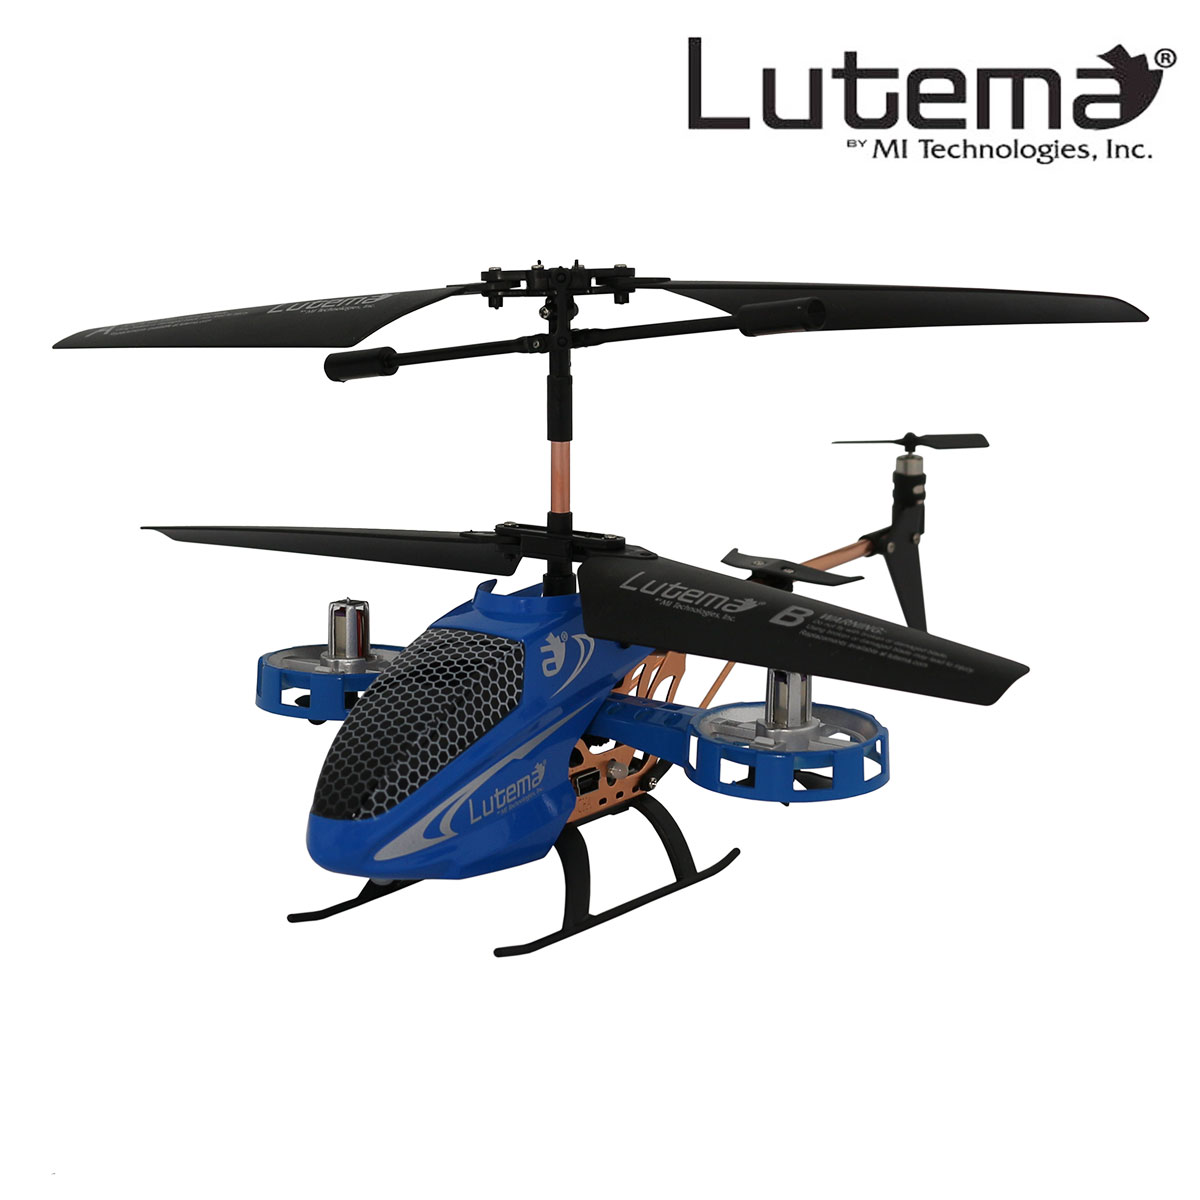 Lutema Avatar2 Hovercraft 4CH Remote Control Helicopter - Blue